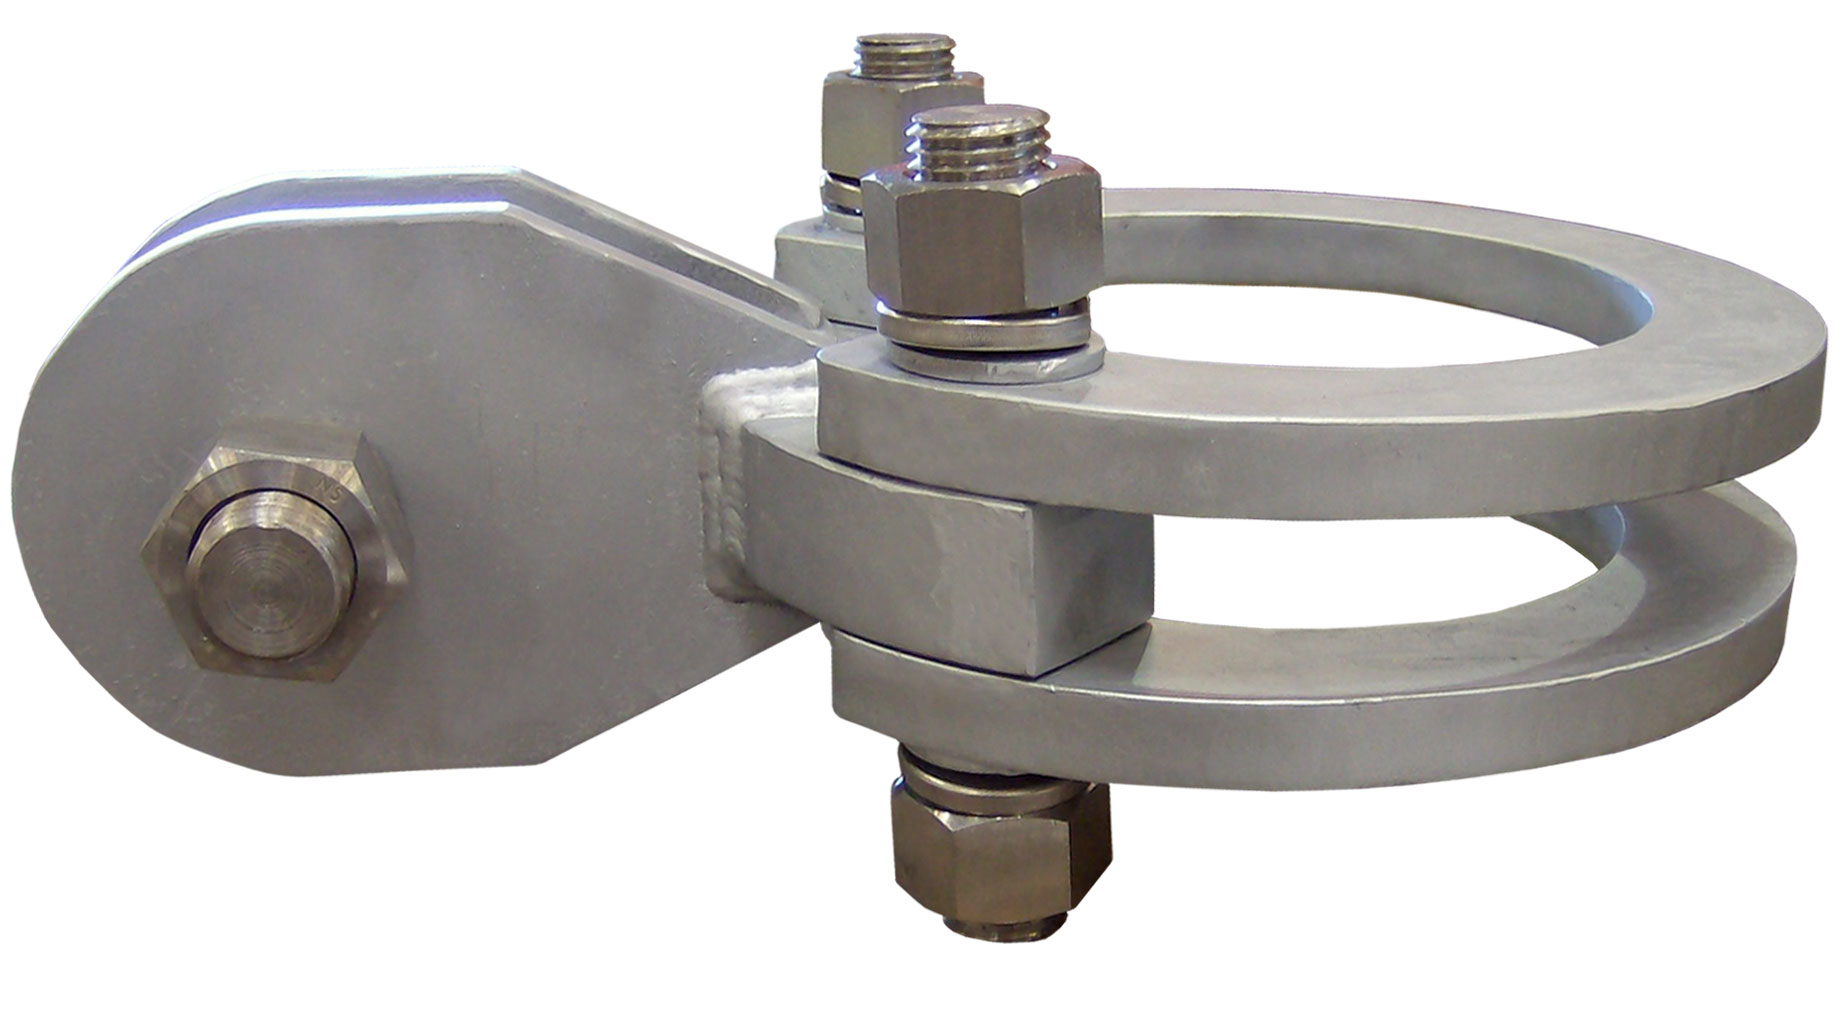 Pipe Clamps & Pipe Risers – Products | Piping Tech